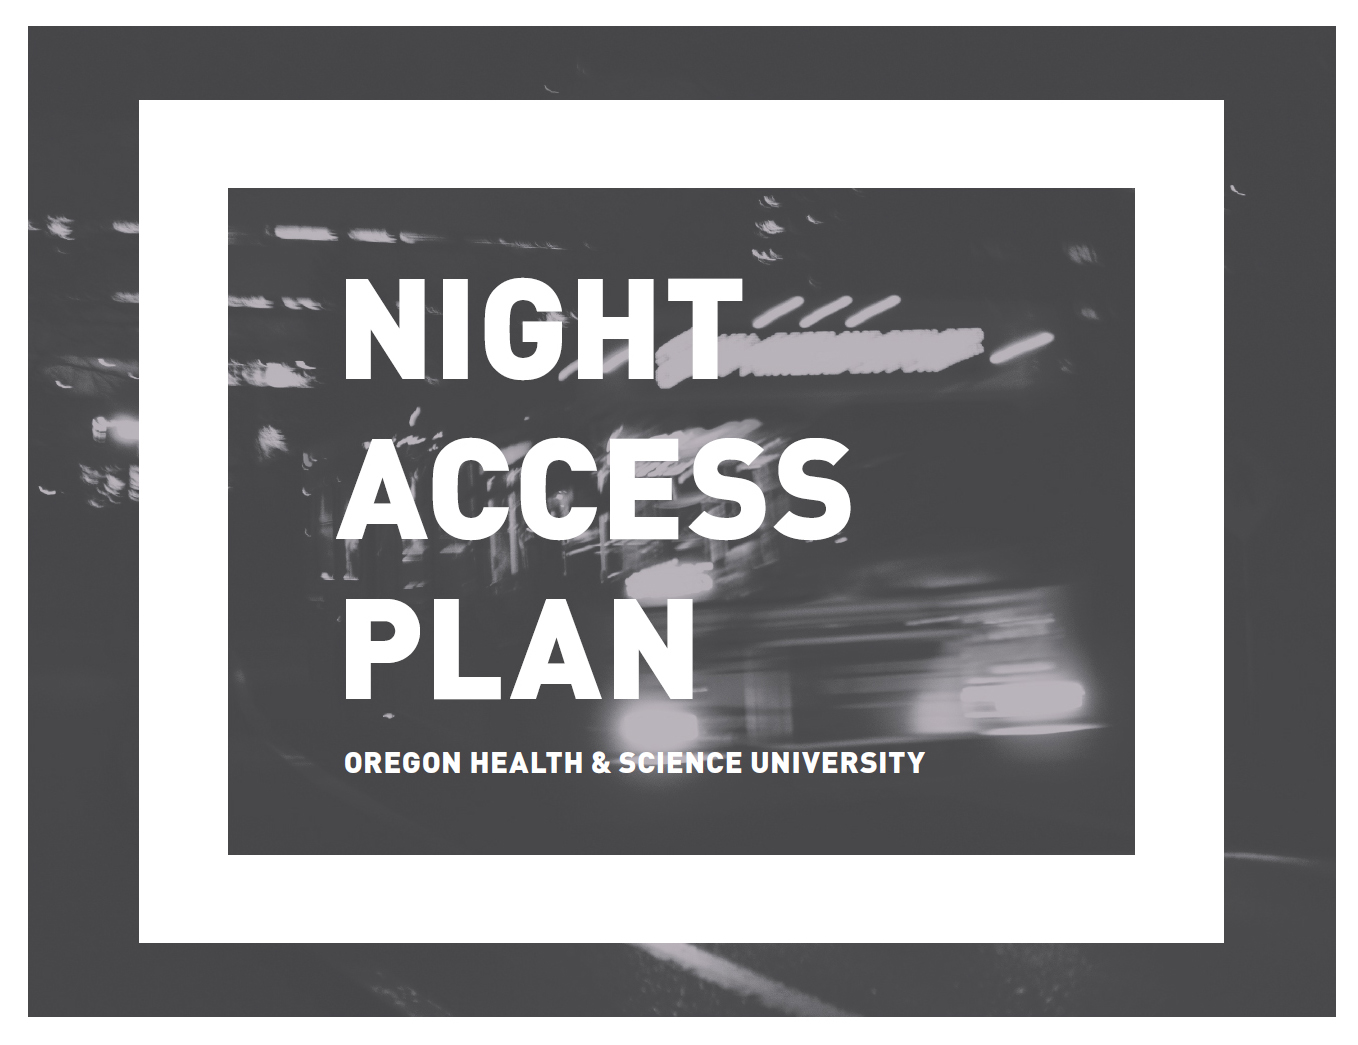 OHSU Night Access Plan cover